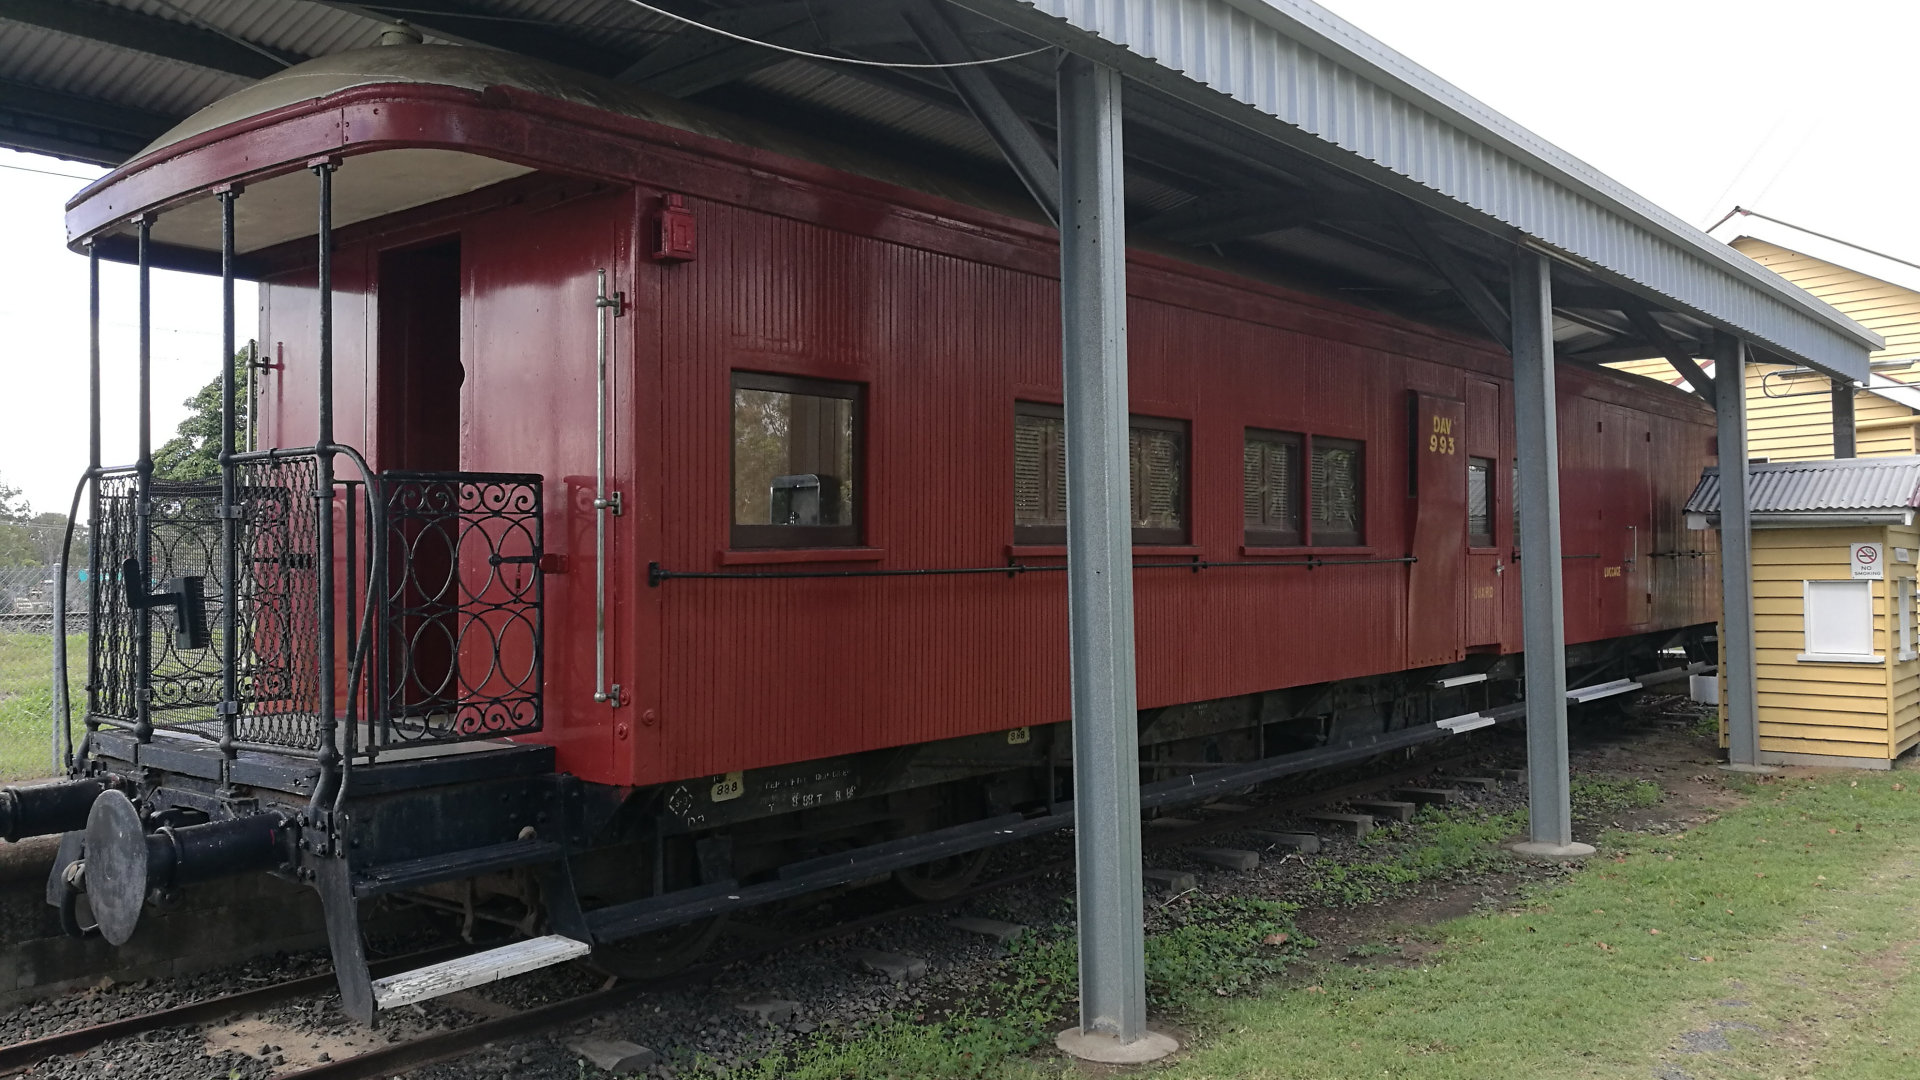 Train carriage at the Bundaberg Railway Museum, located at the original train station for Bundaberg, with a collection of railway memorabilia and a variety of carriages